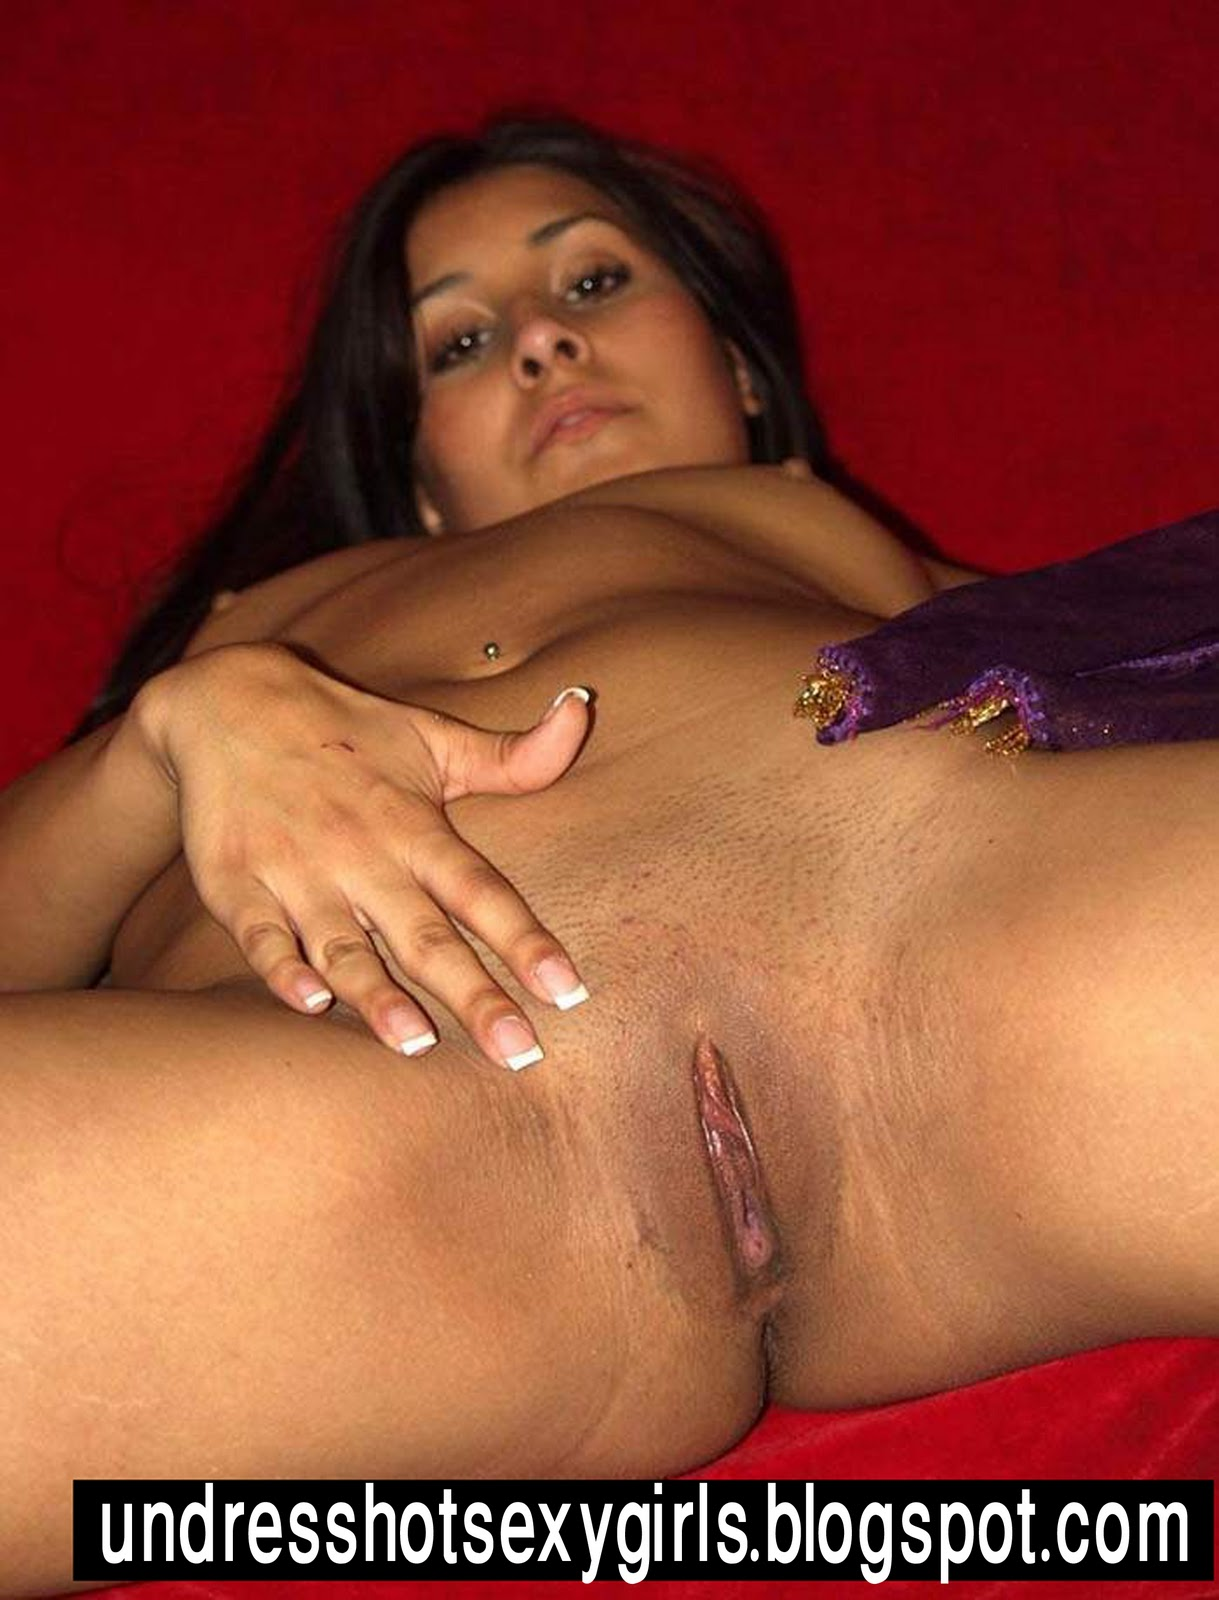 pakistani model Search - XVIDEOSCOM